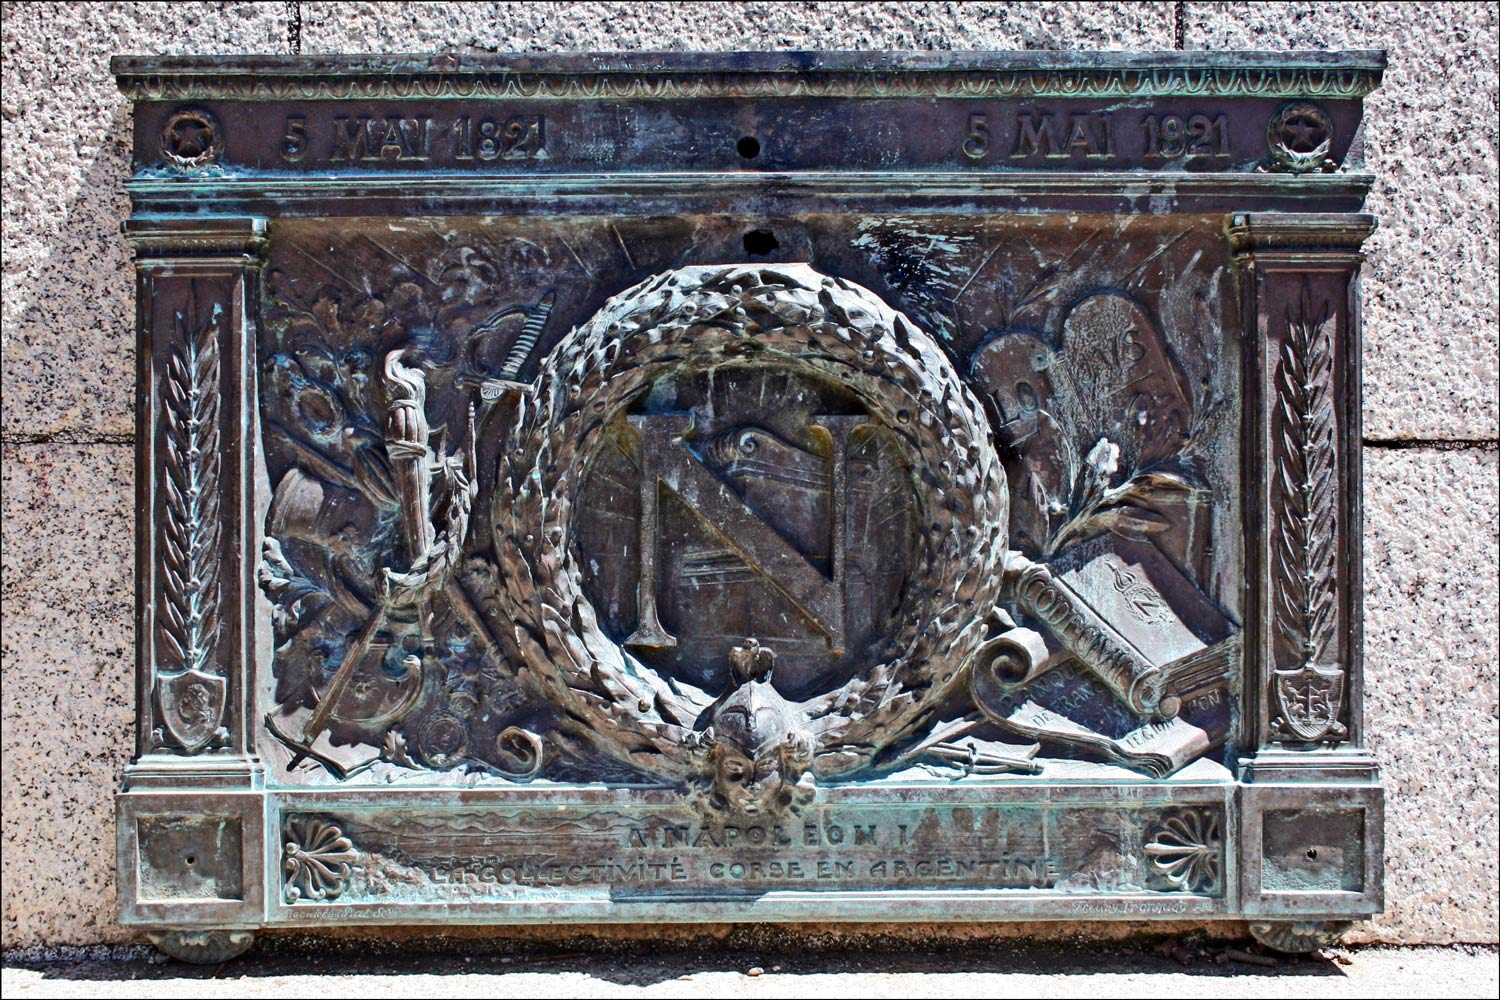 Plaque in la Place d'Austerlitz